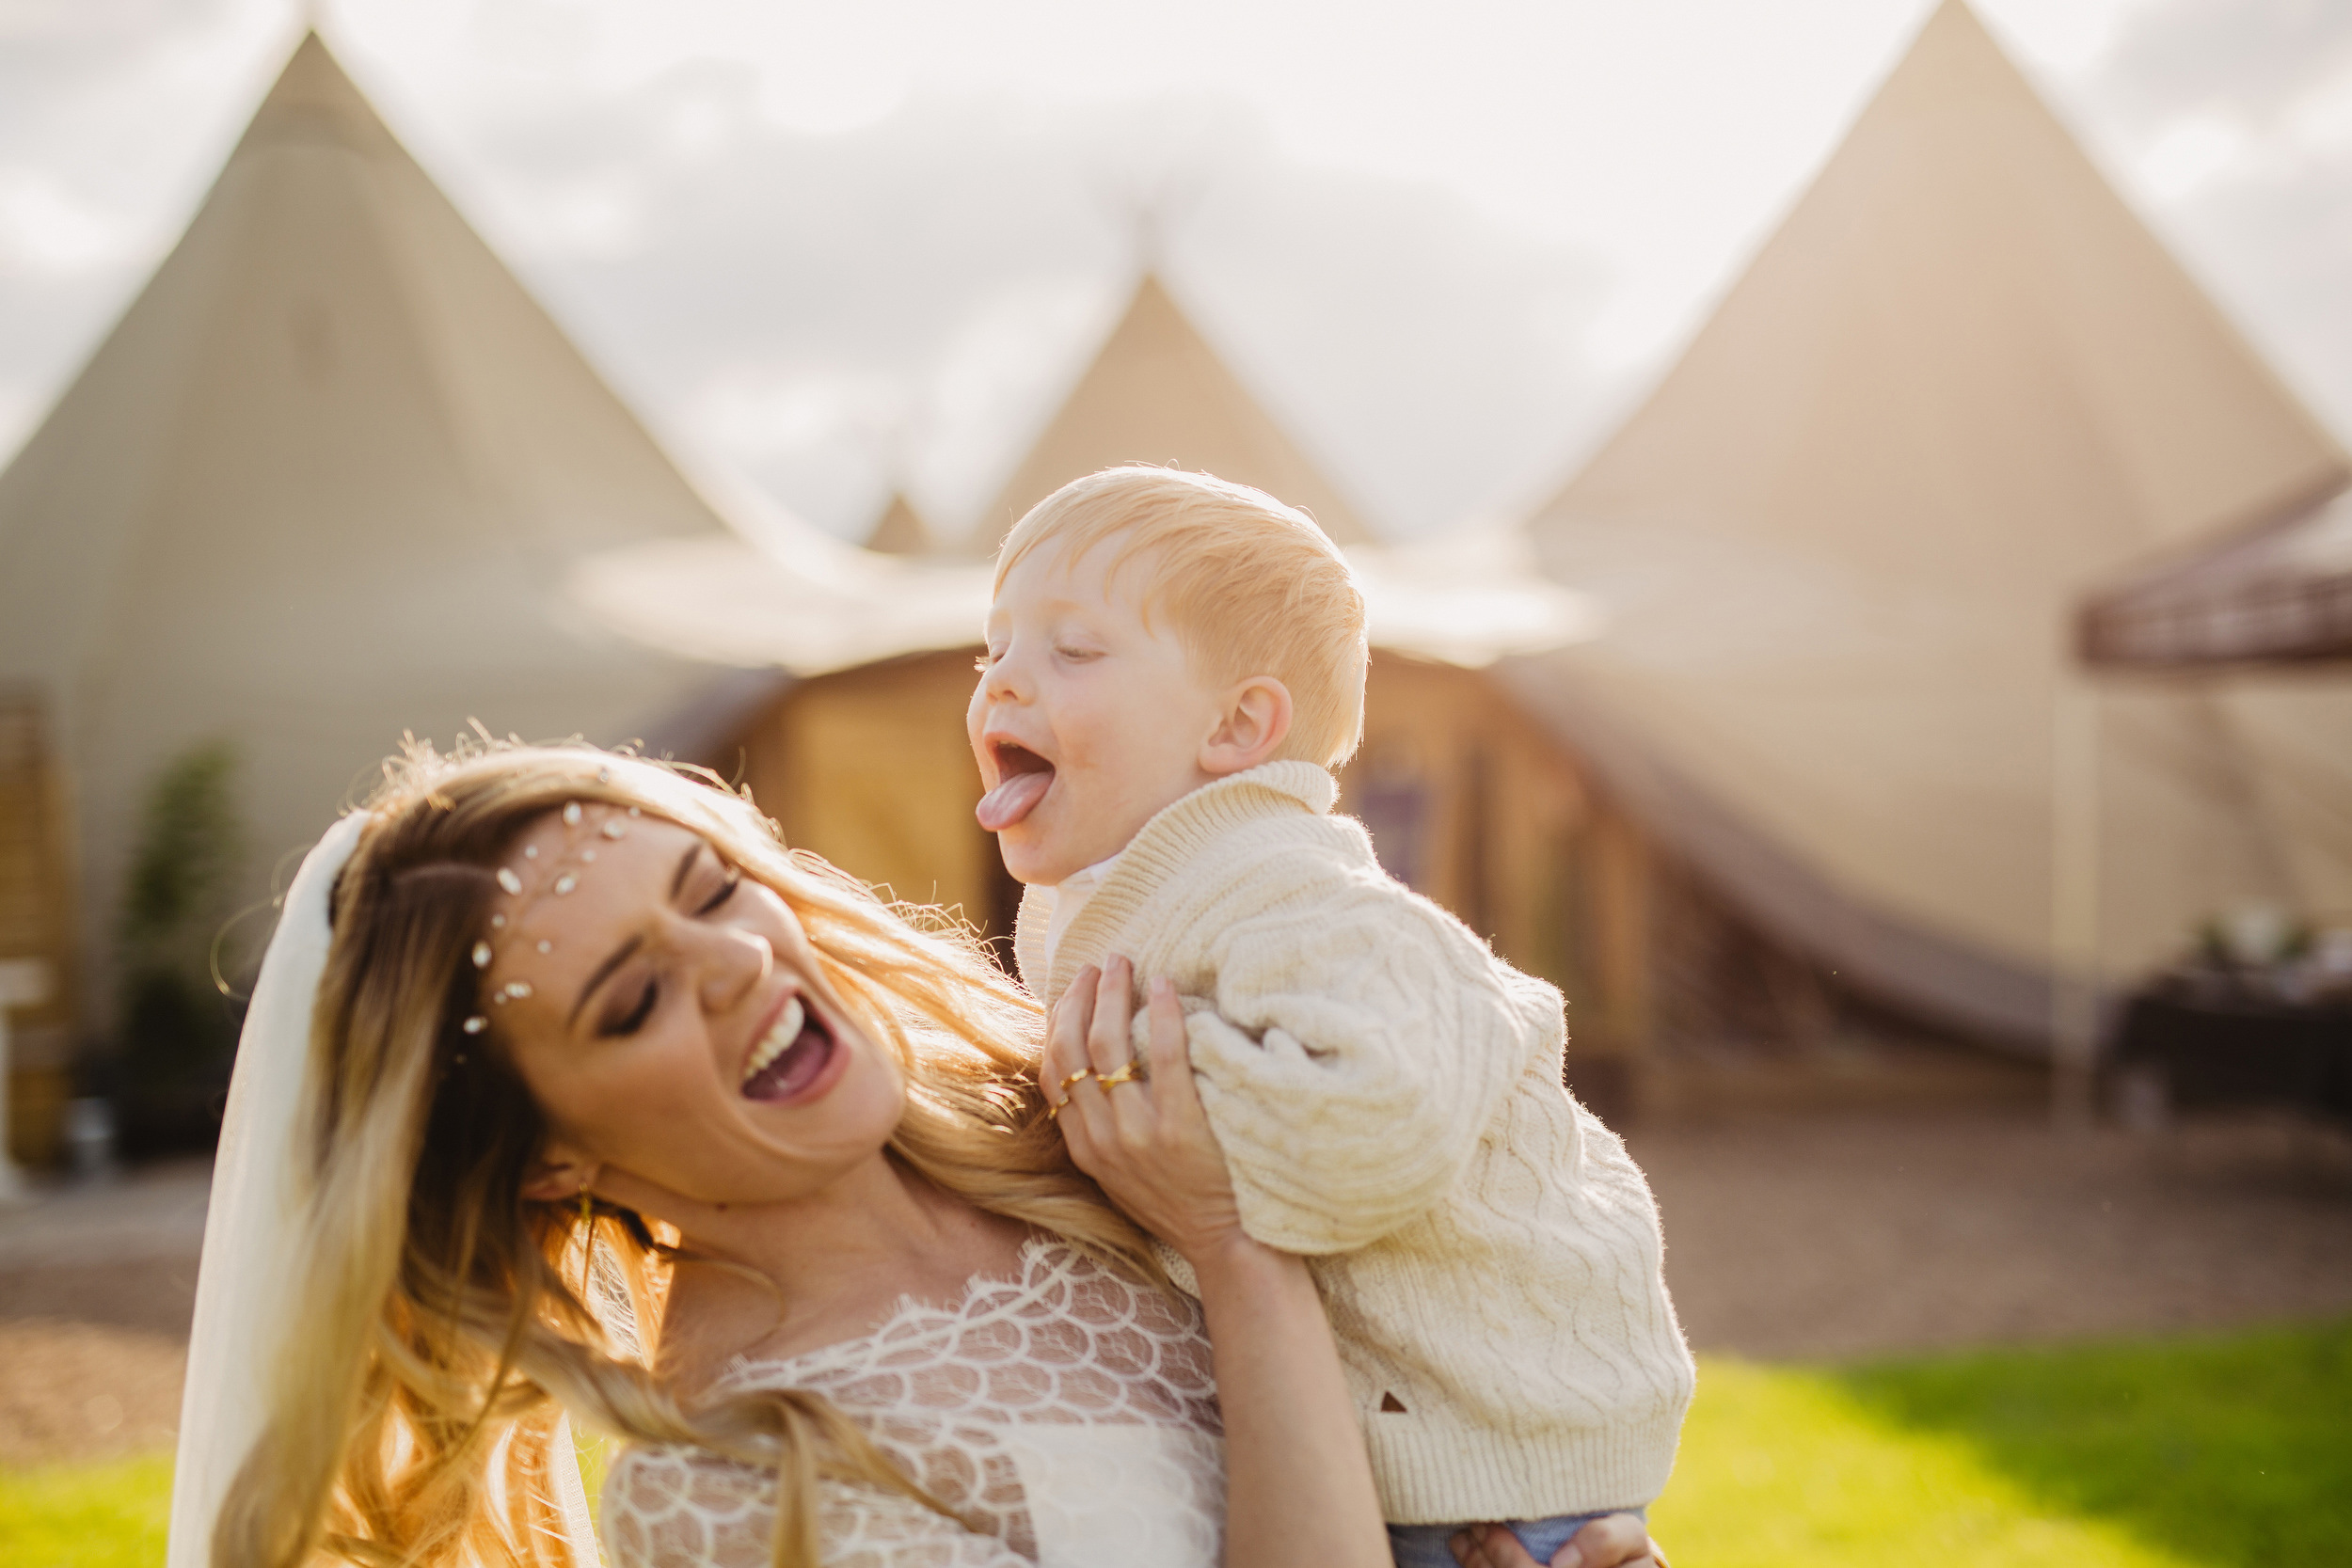 Gemma-Bohemian-Outdoor-Tipi-Wedding-Laid-Back-Relaxed-Family-Wedding-Kate-Beaumont-Astilbe-by-S6-Photography-Sheffield-41.jpg